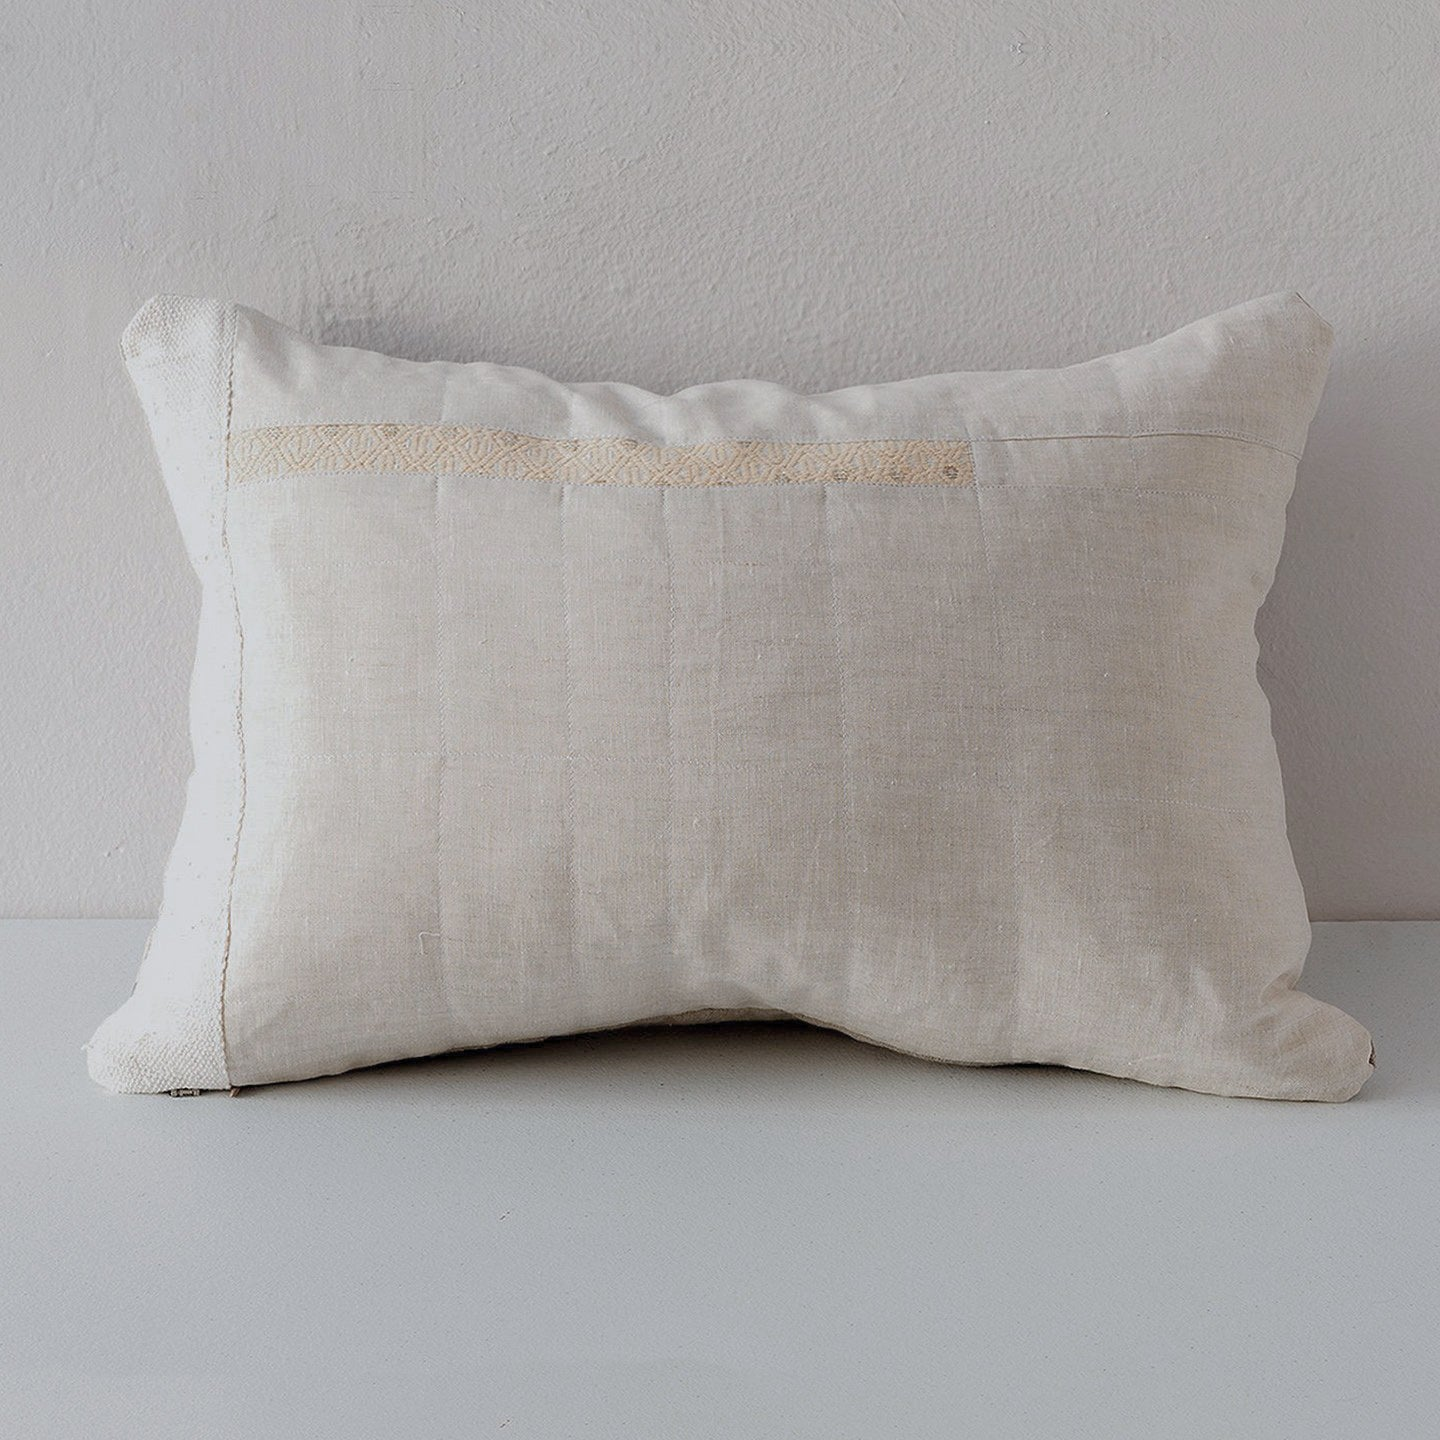 Piecework Textile Pillow with Mud Cloth